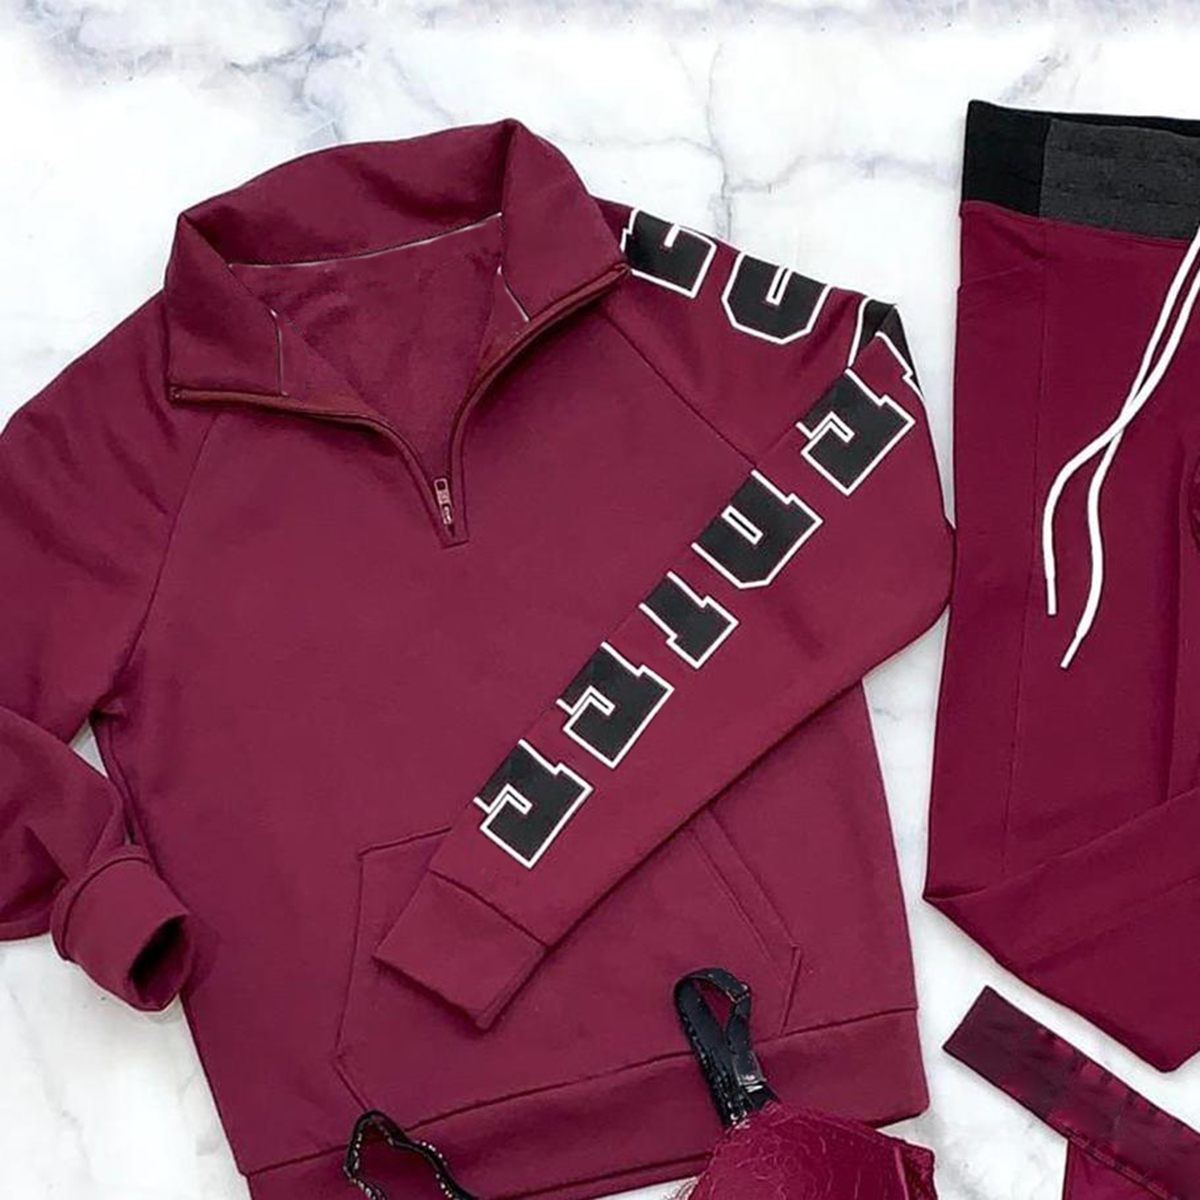 Letter sports suit(Underwear is not included)